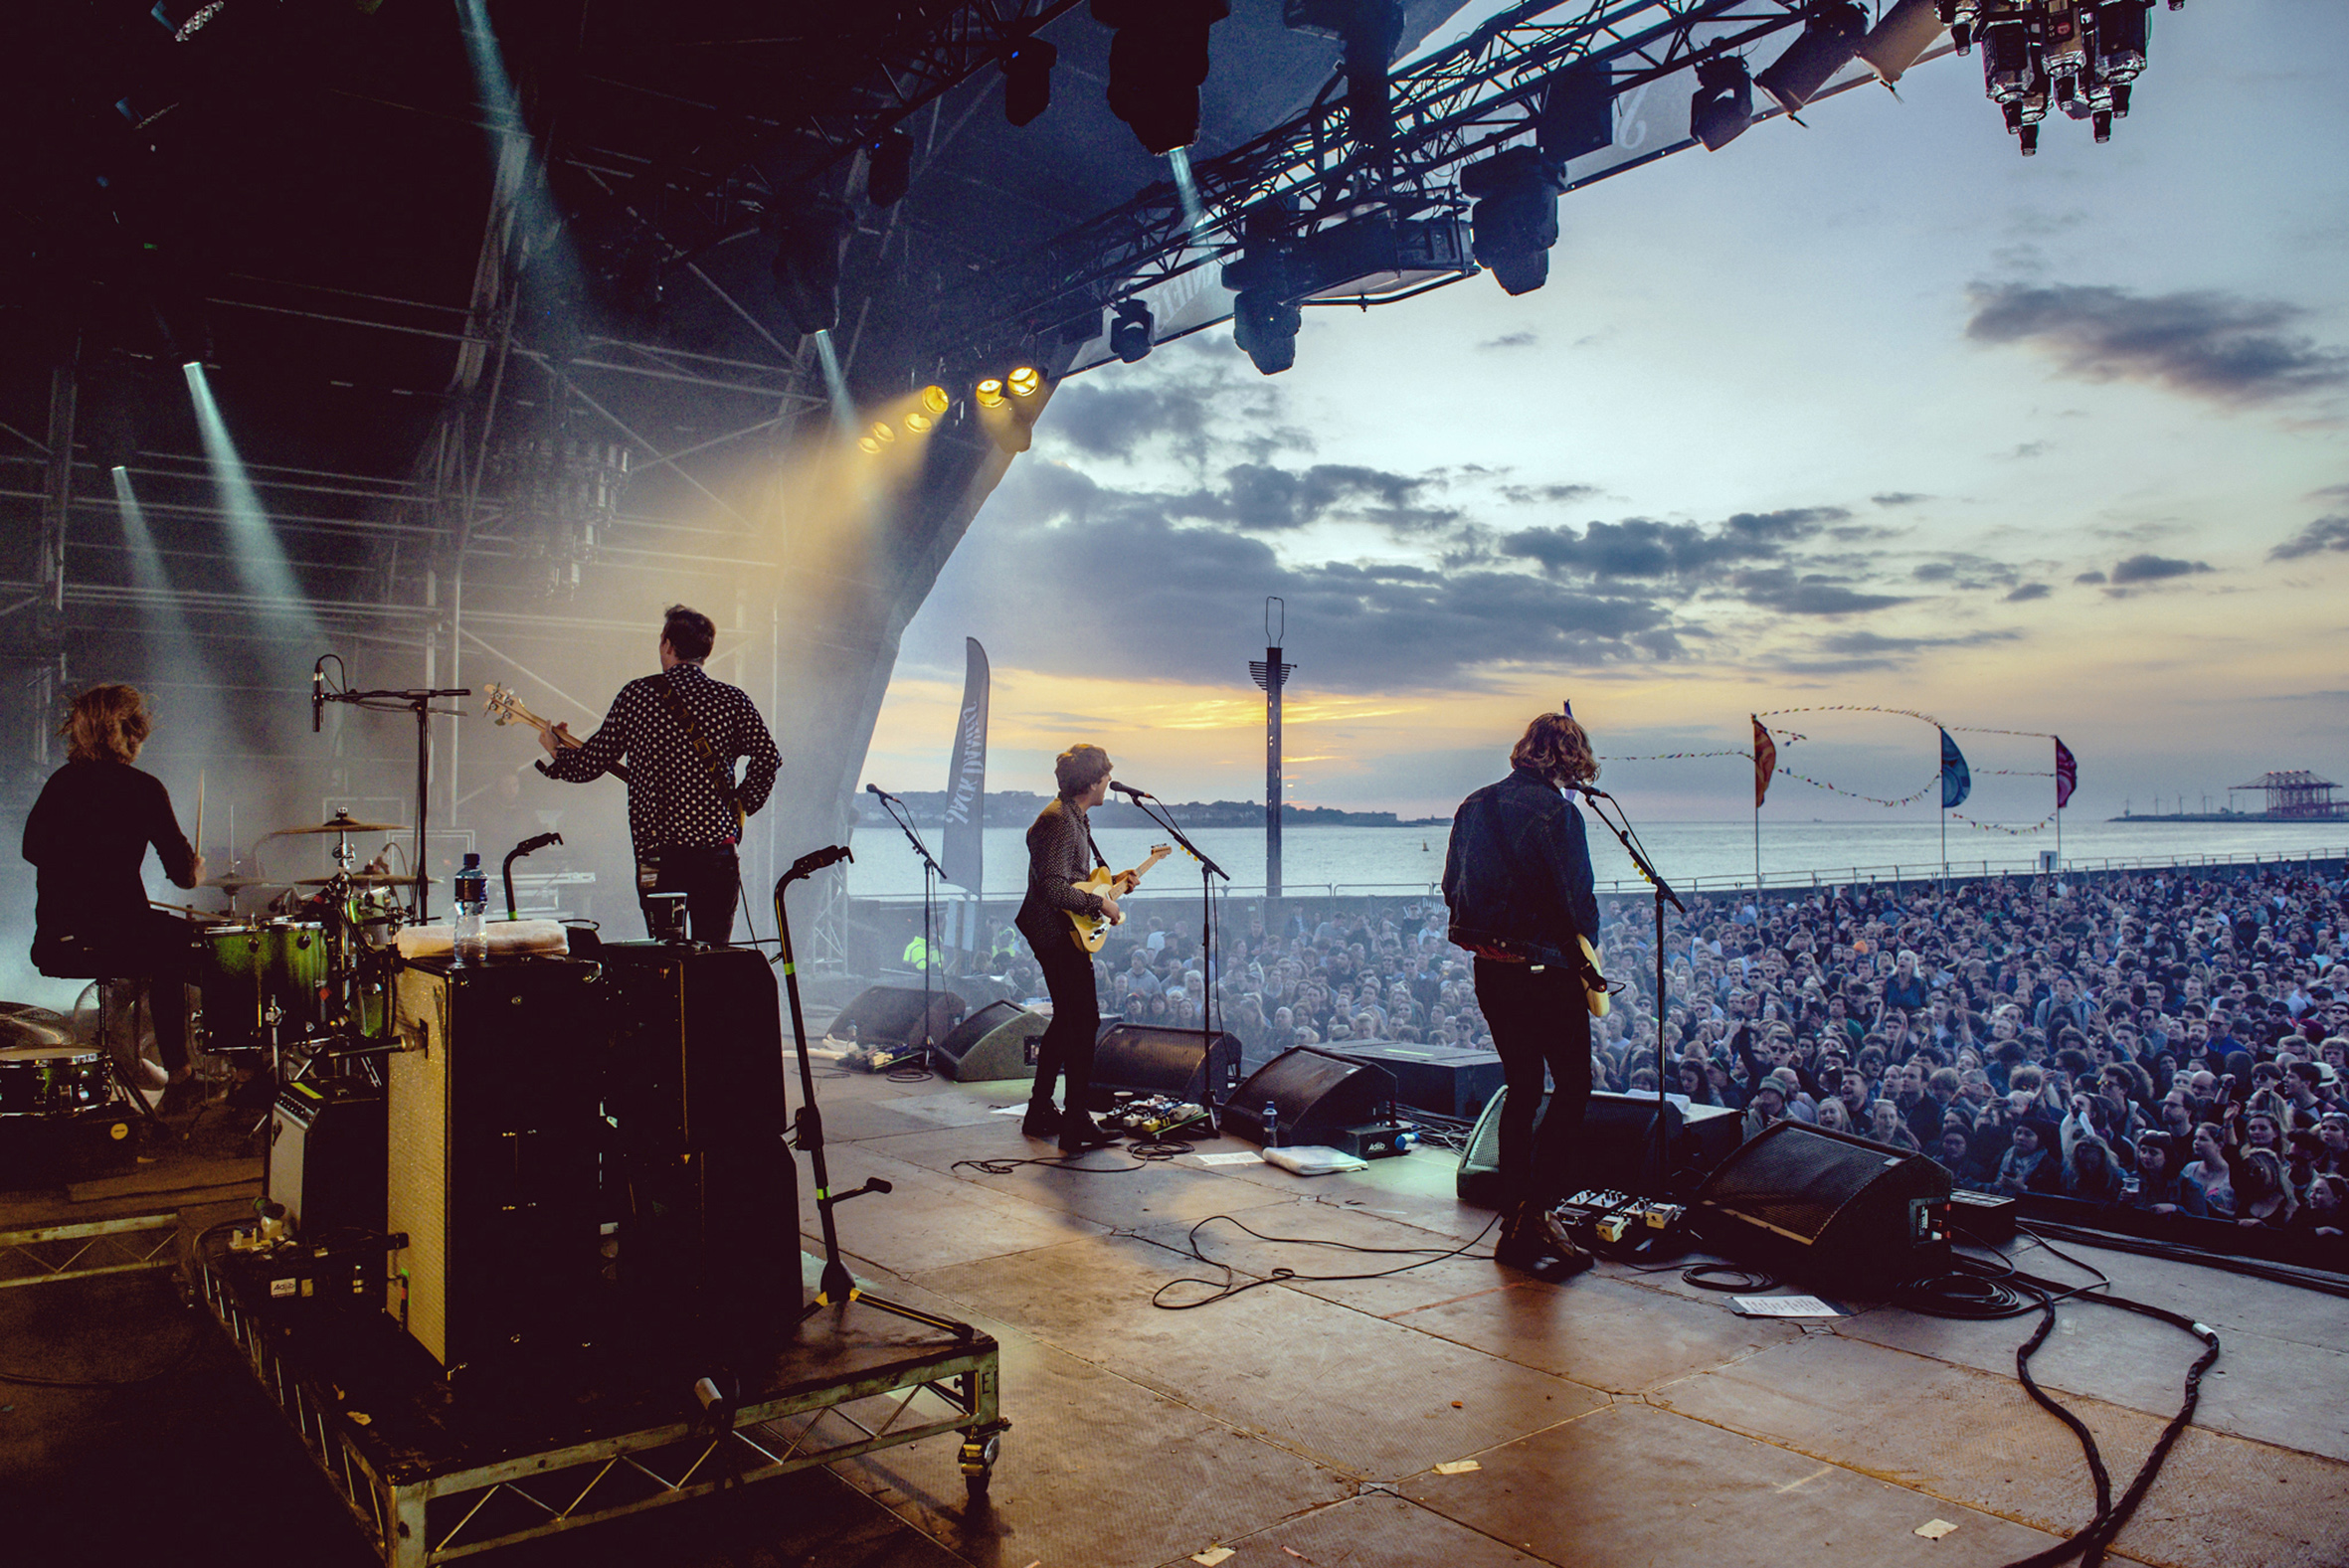 CircaWaves_Soundcity2016_10_AndyHughes copy.jpg